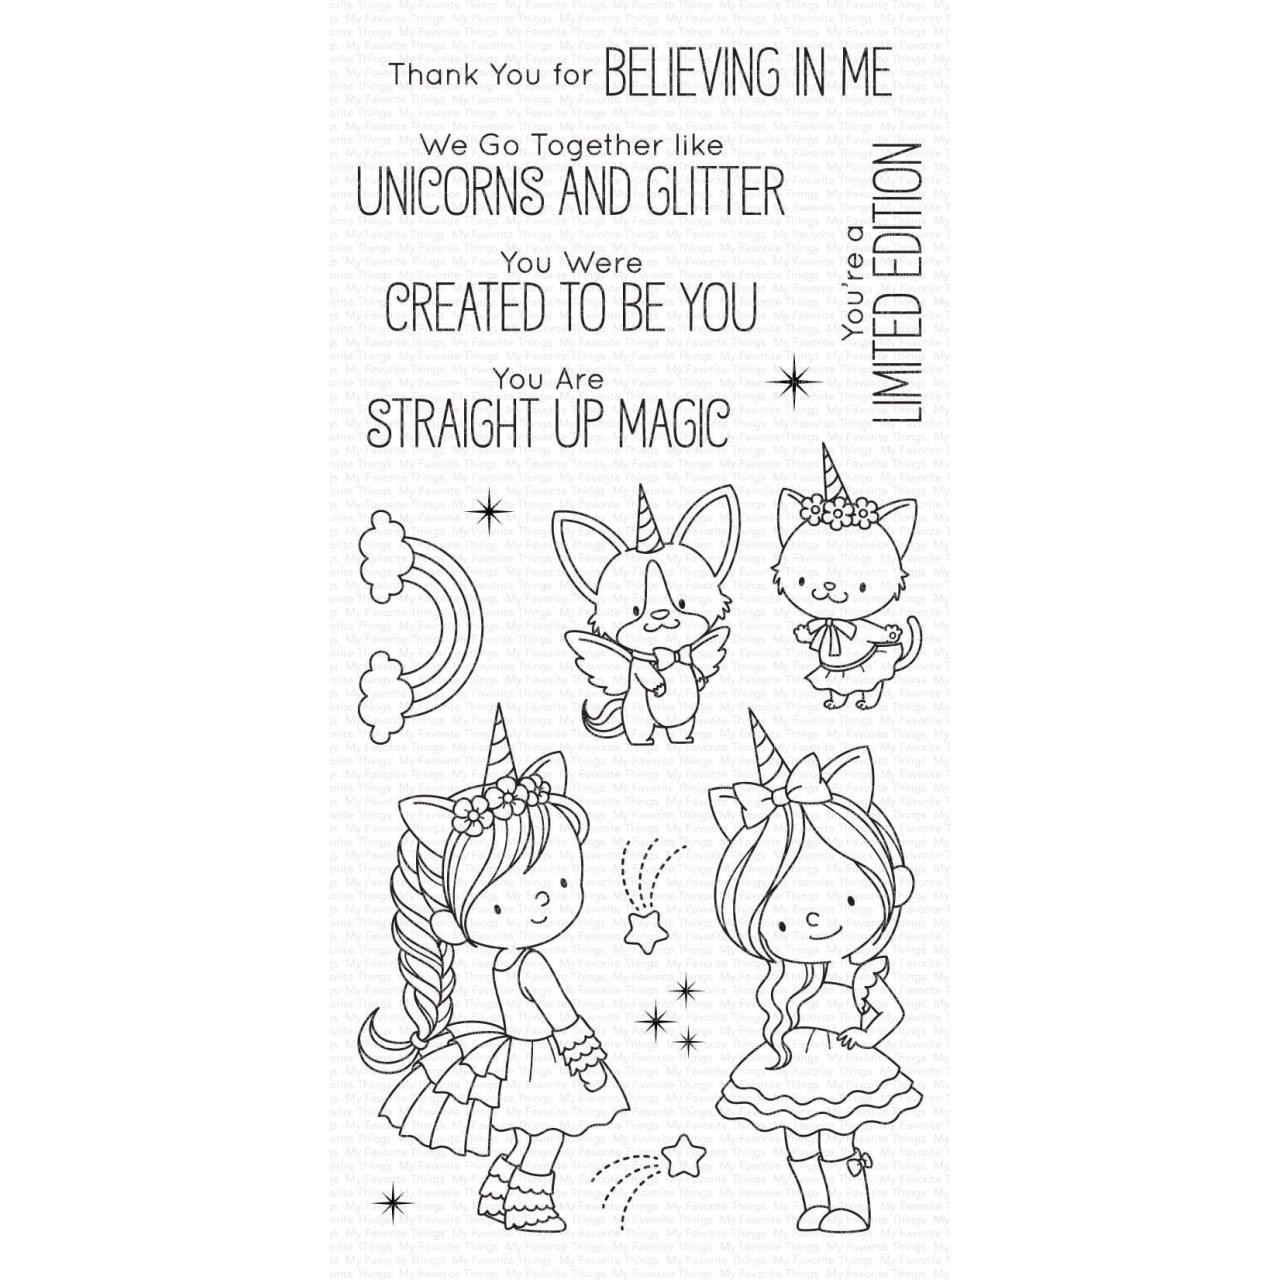 Unicorns and Glitter by Birdie Brown, My Favorite Things Clear Stamps - 849923026137